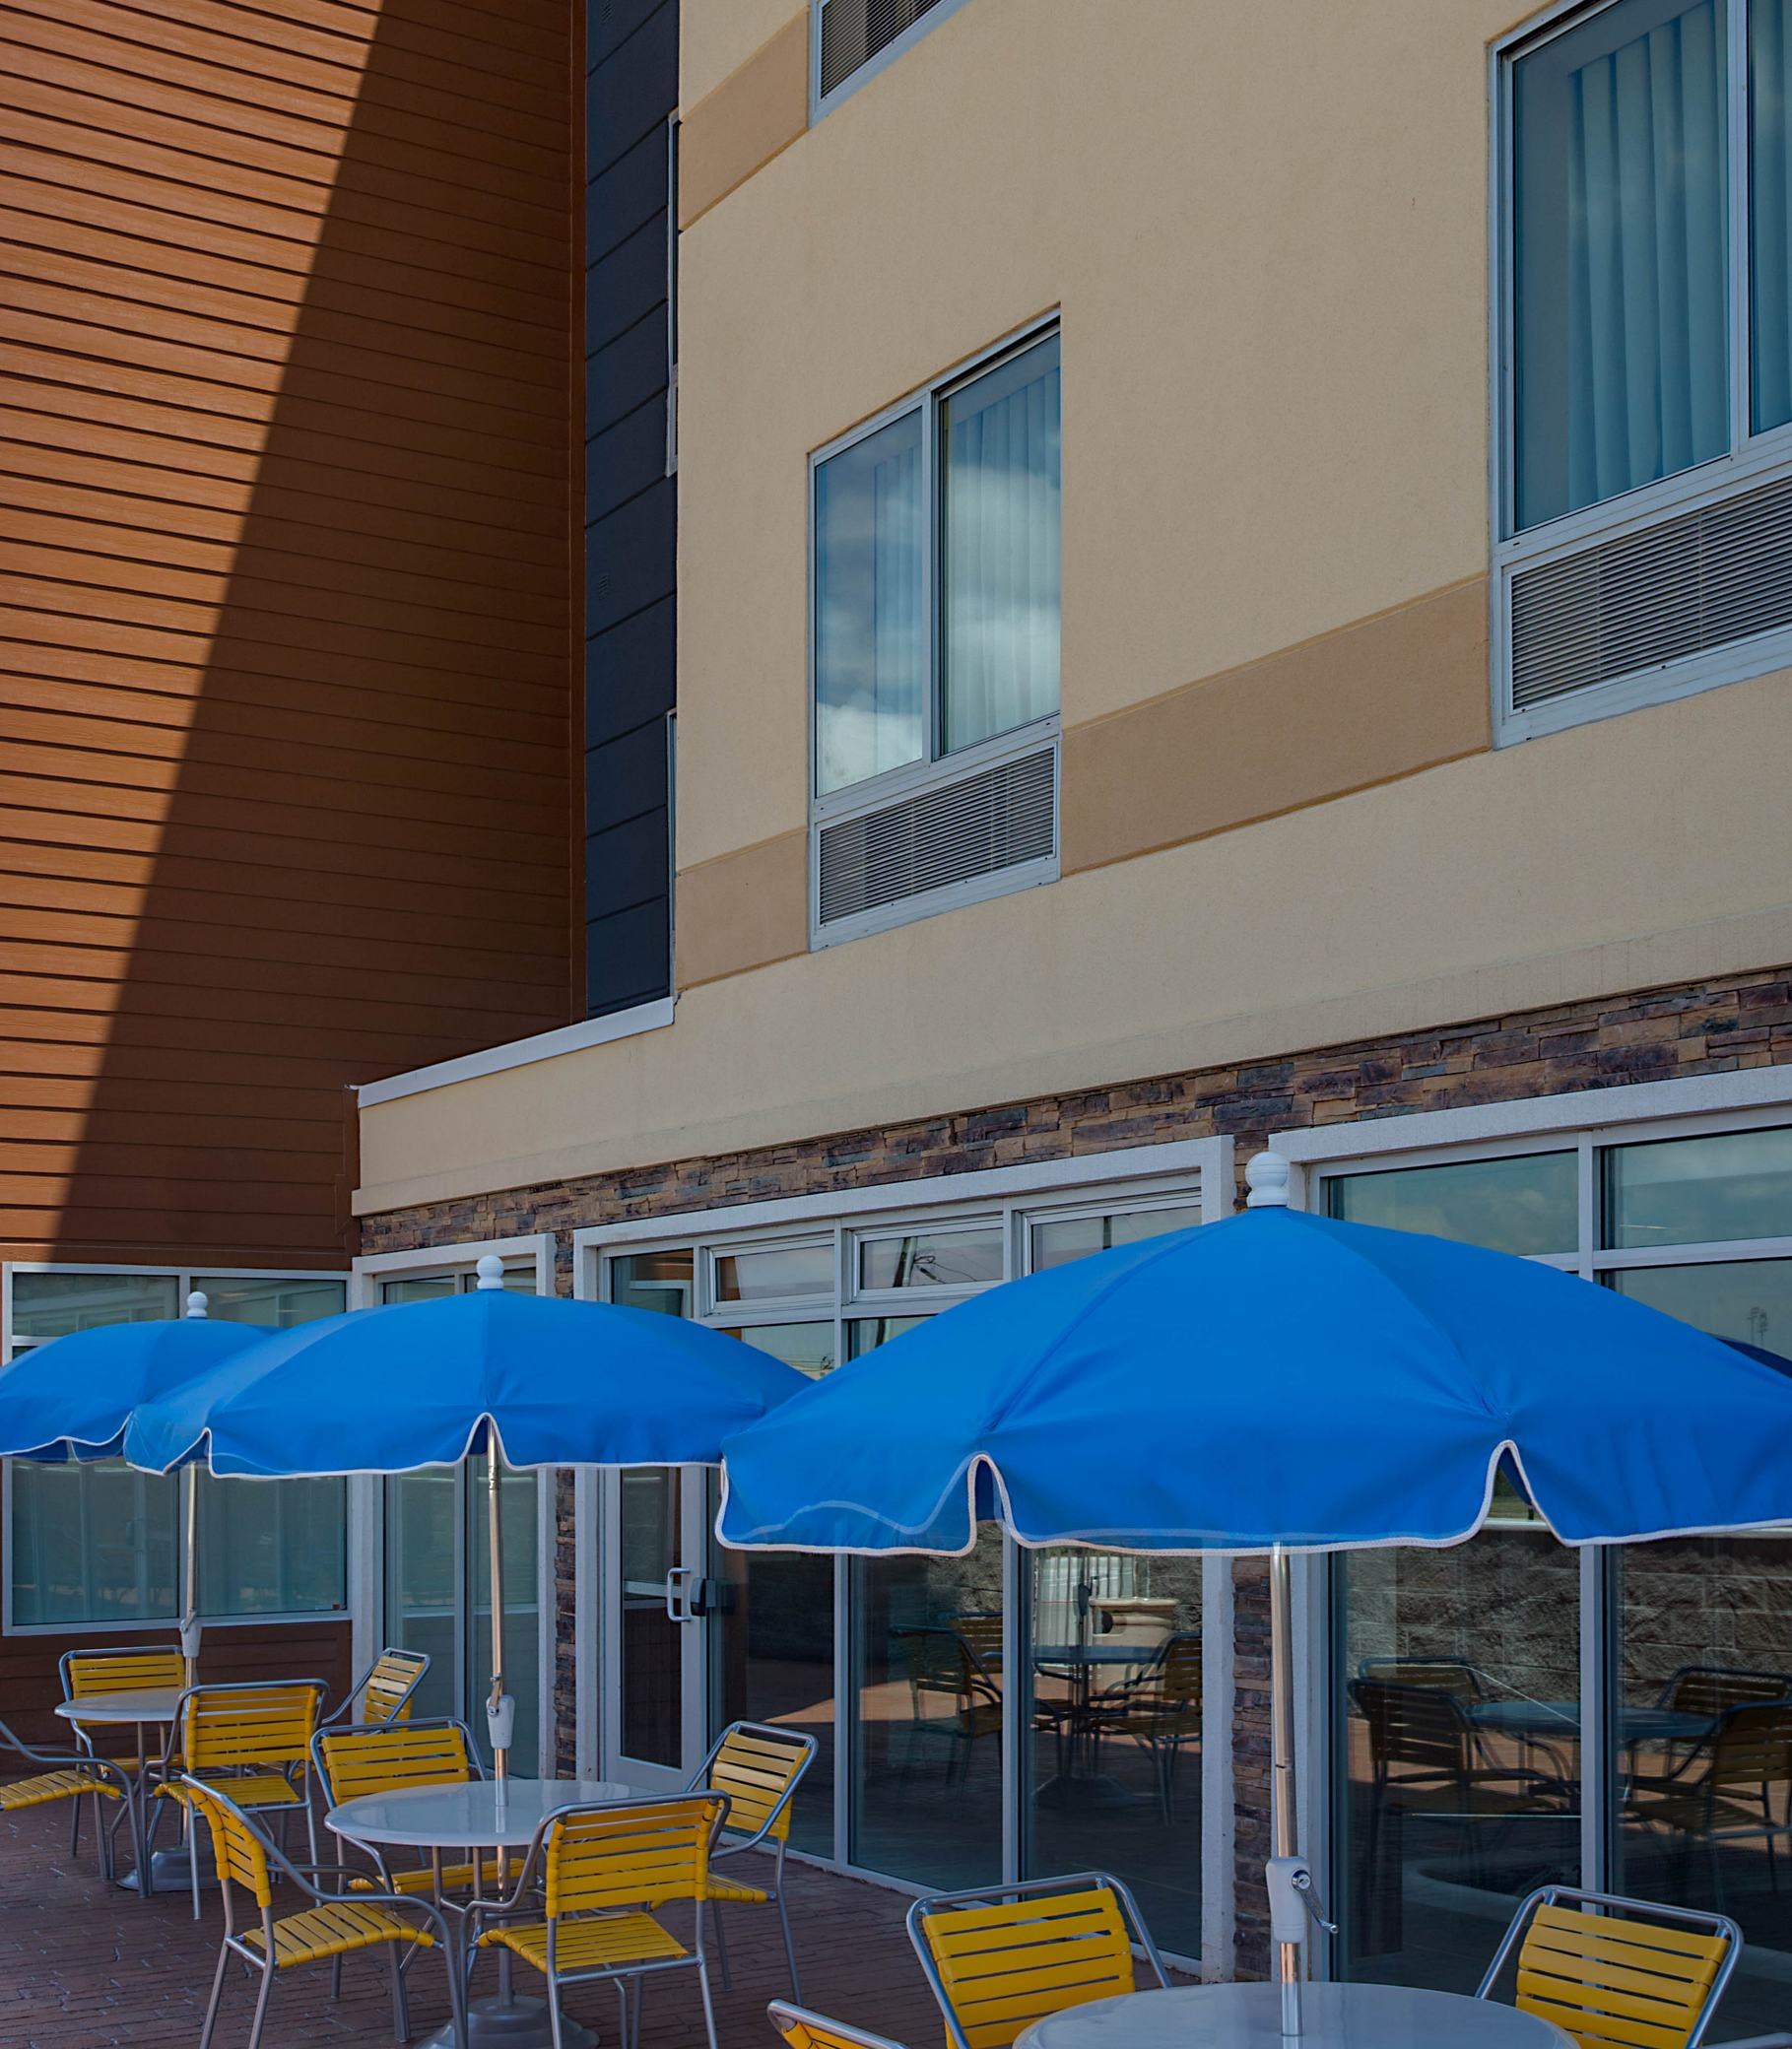 Holiday Inn Express Dallas: Fairfield Inn & Suites By Marriott Dallas West/I-30